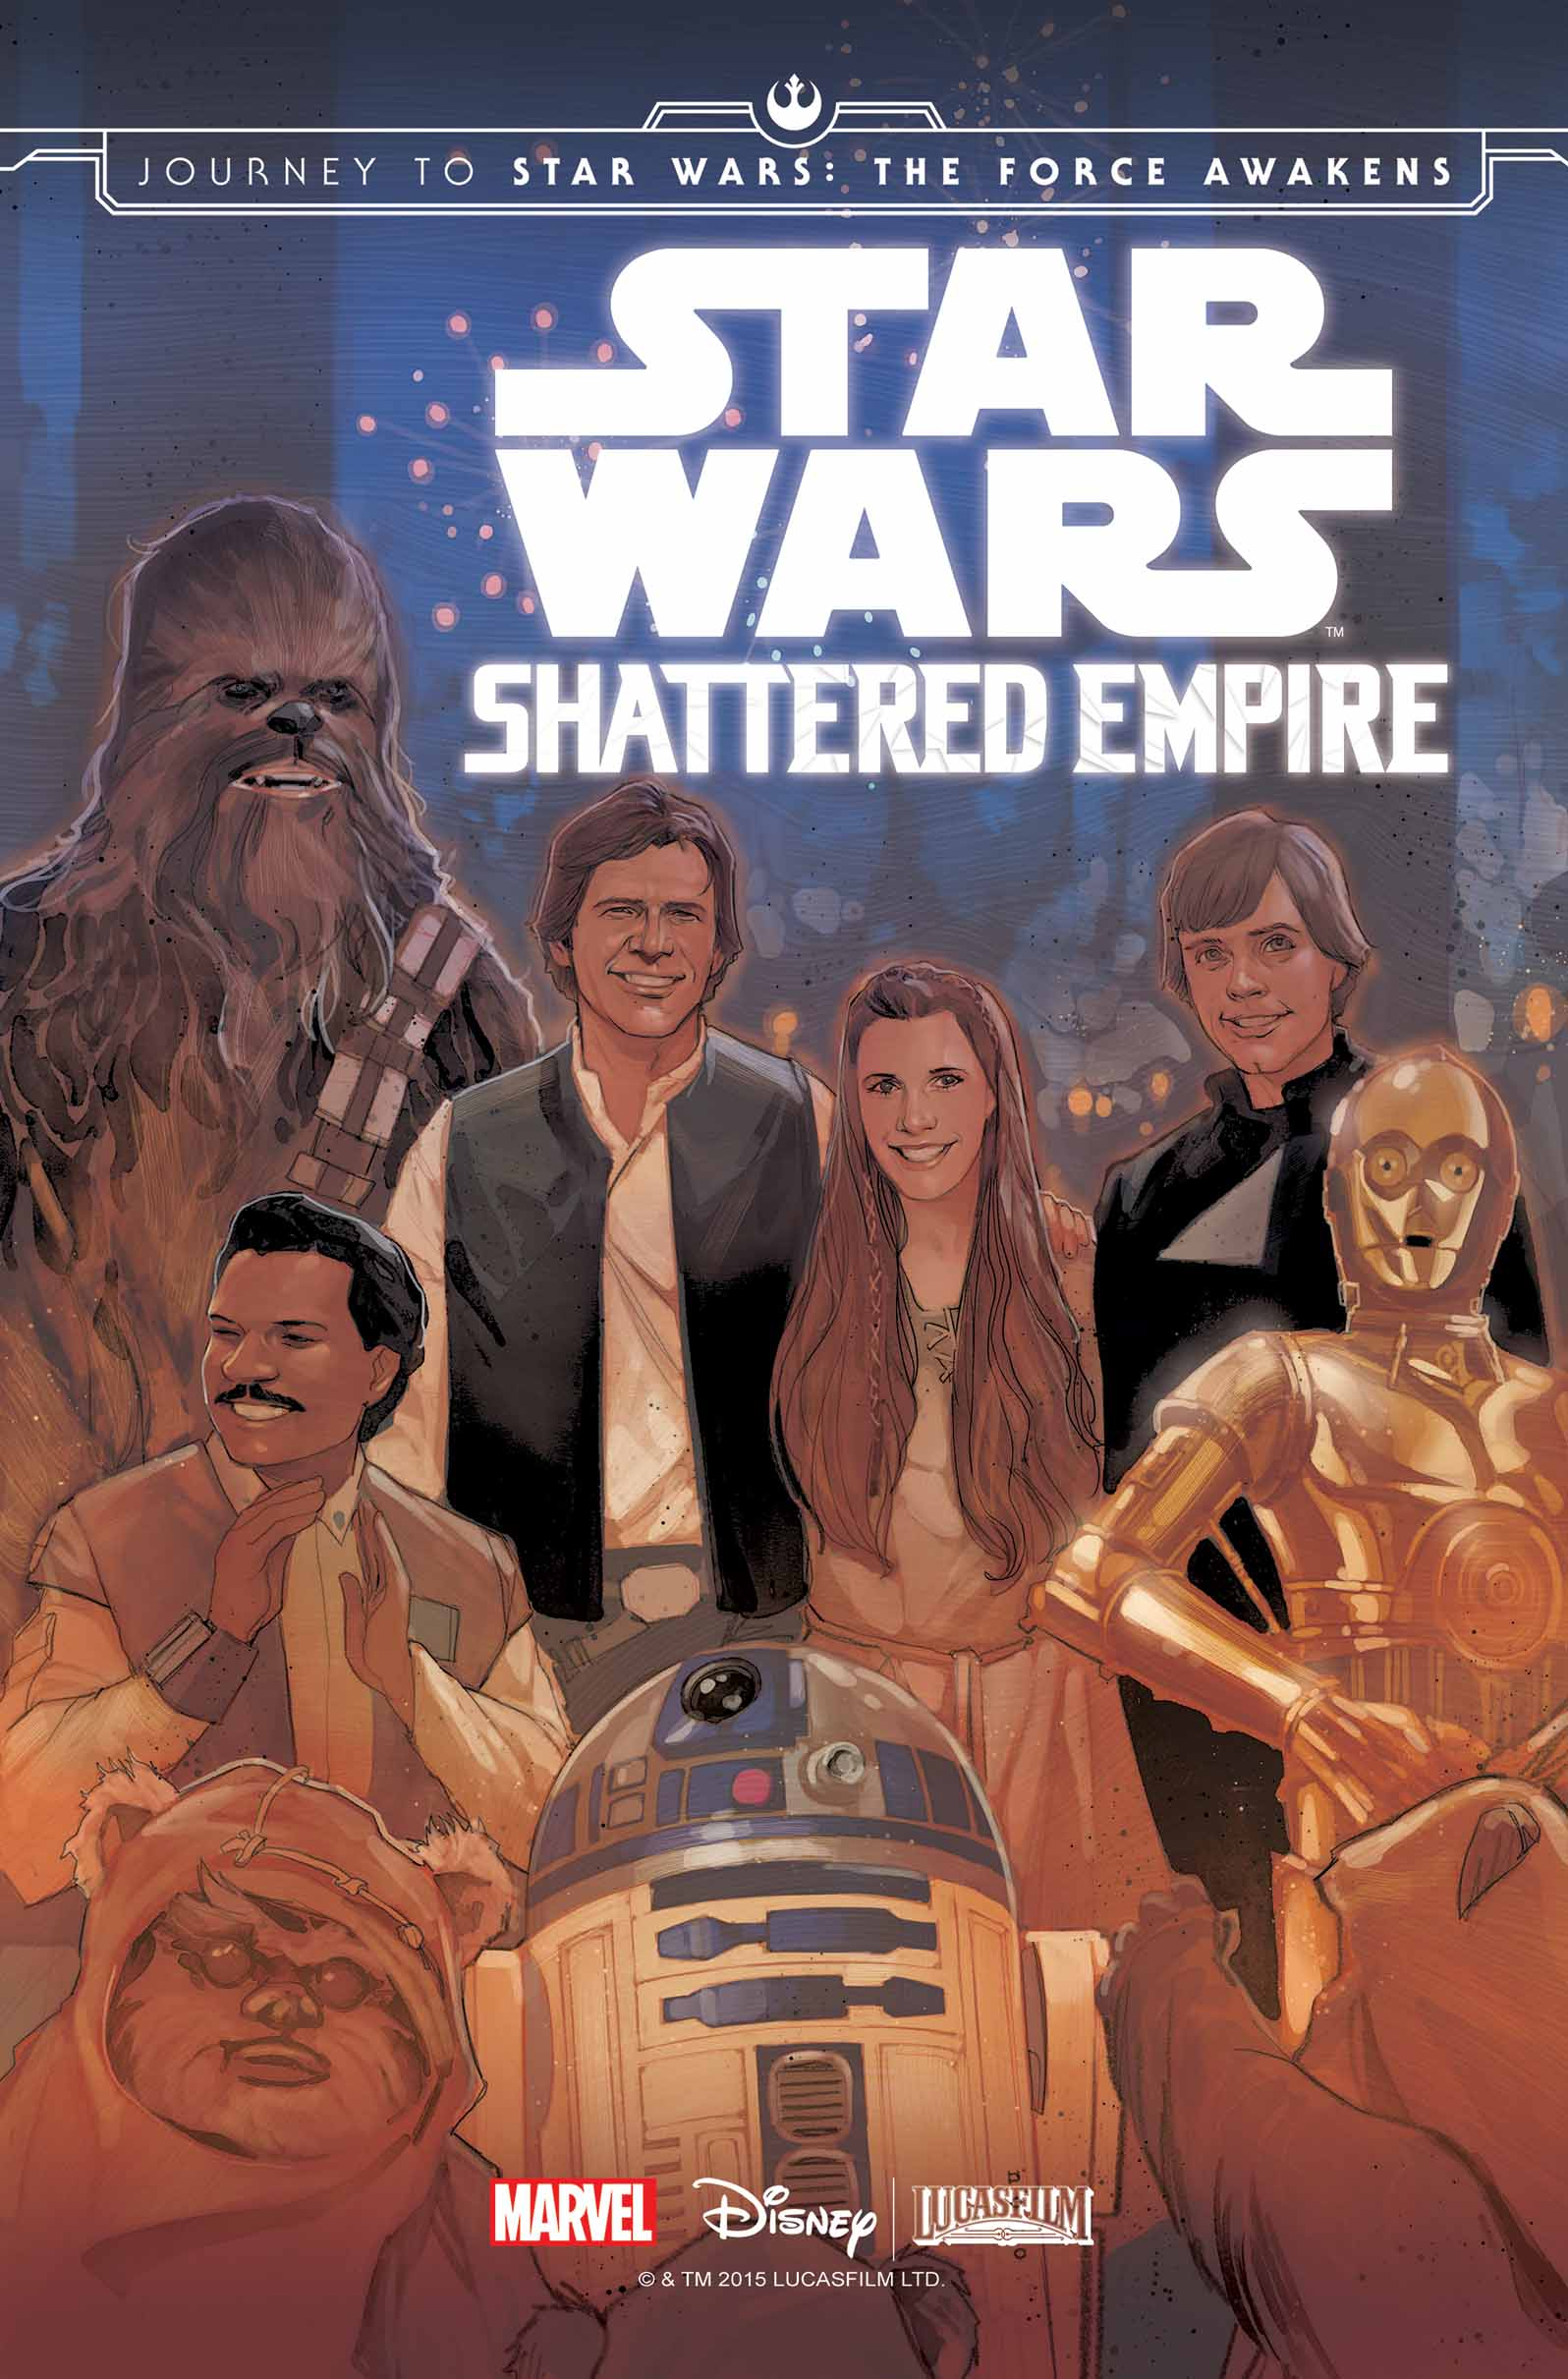 Journey To Star Wars: The Force Awakens - Shattered Empire (2015) #1